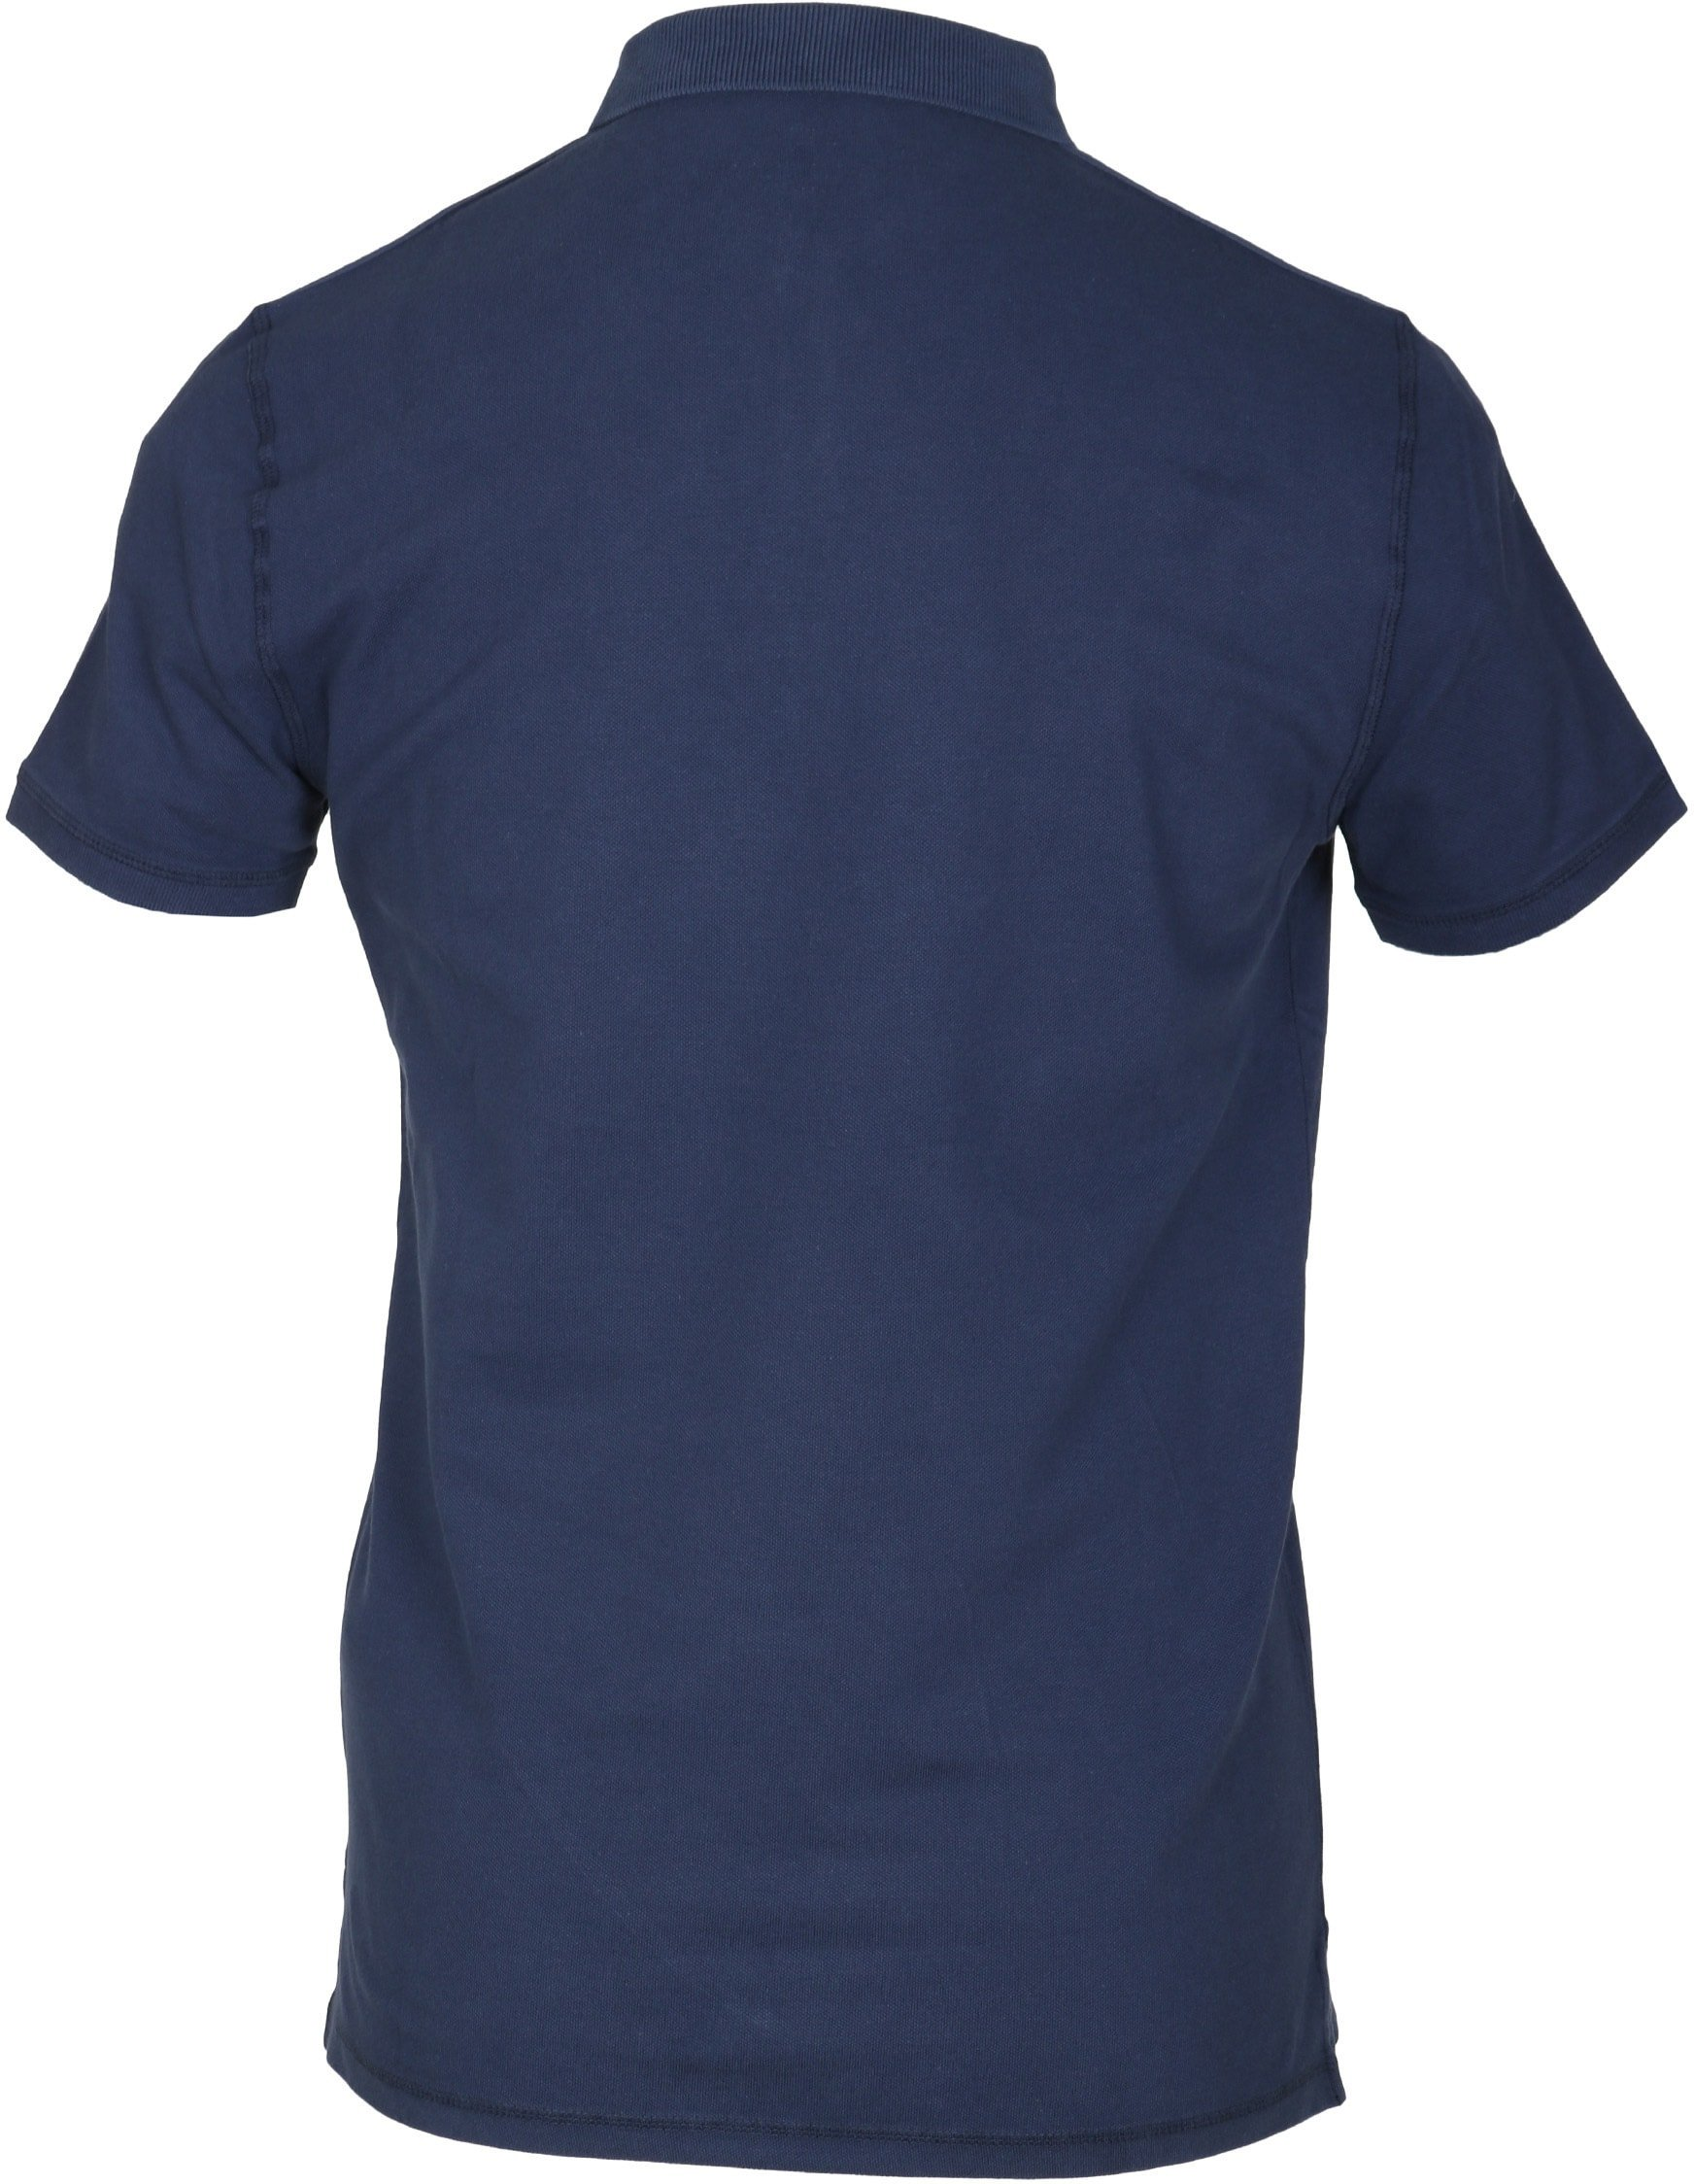 New In Town Polo Uni Navy foto 2